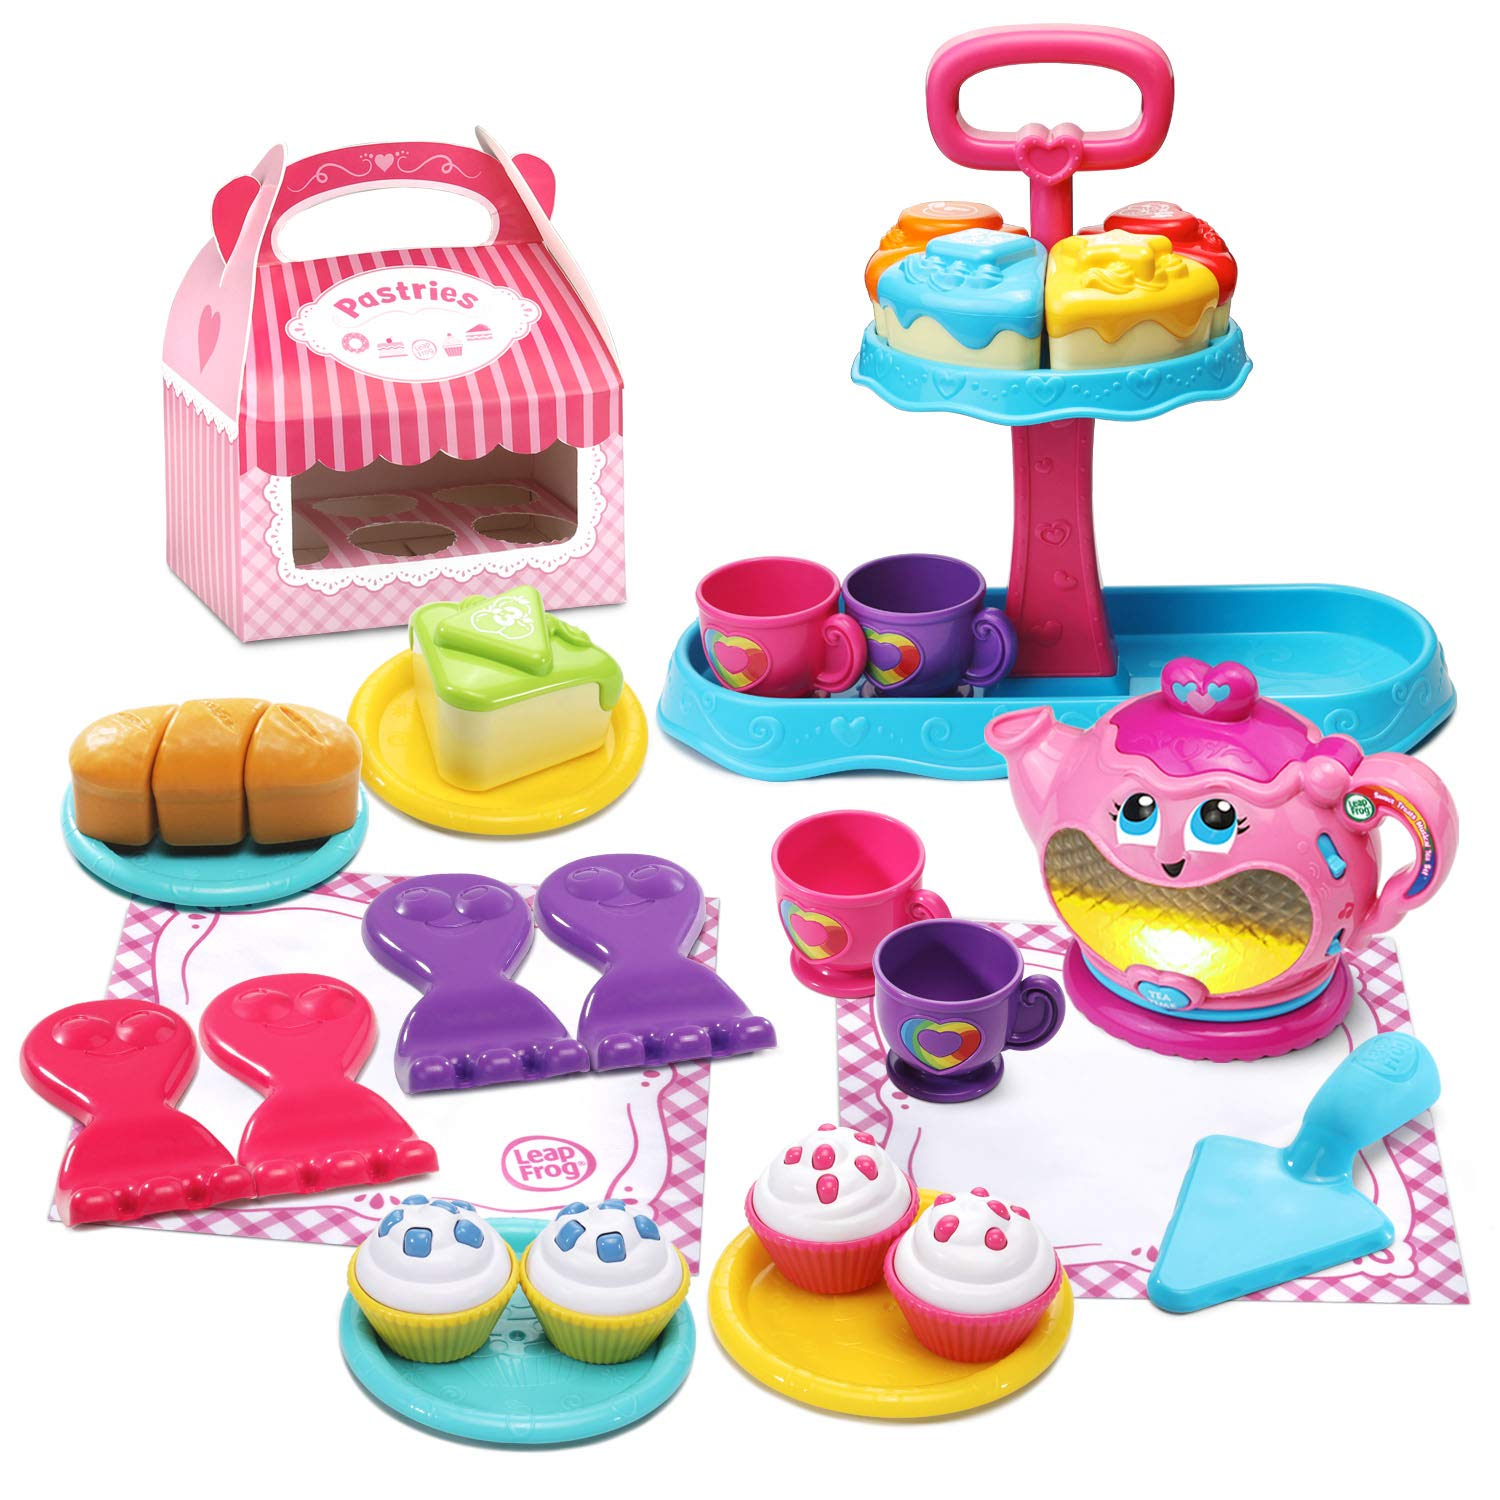 LeapFrog Sweet Treats Musical Deluxe Tea Set (Amazon Exclusive)